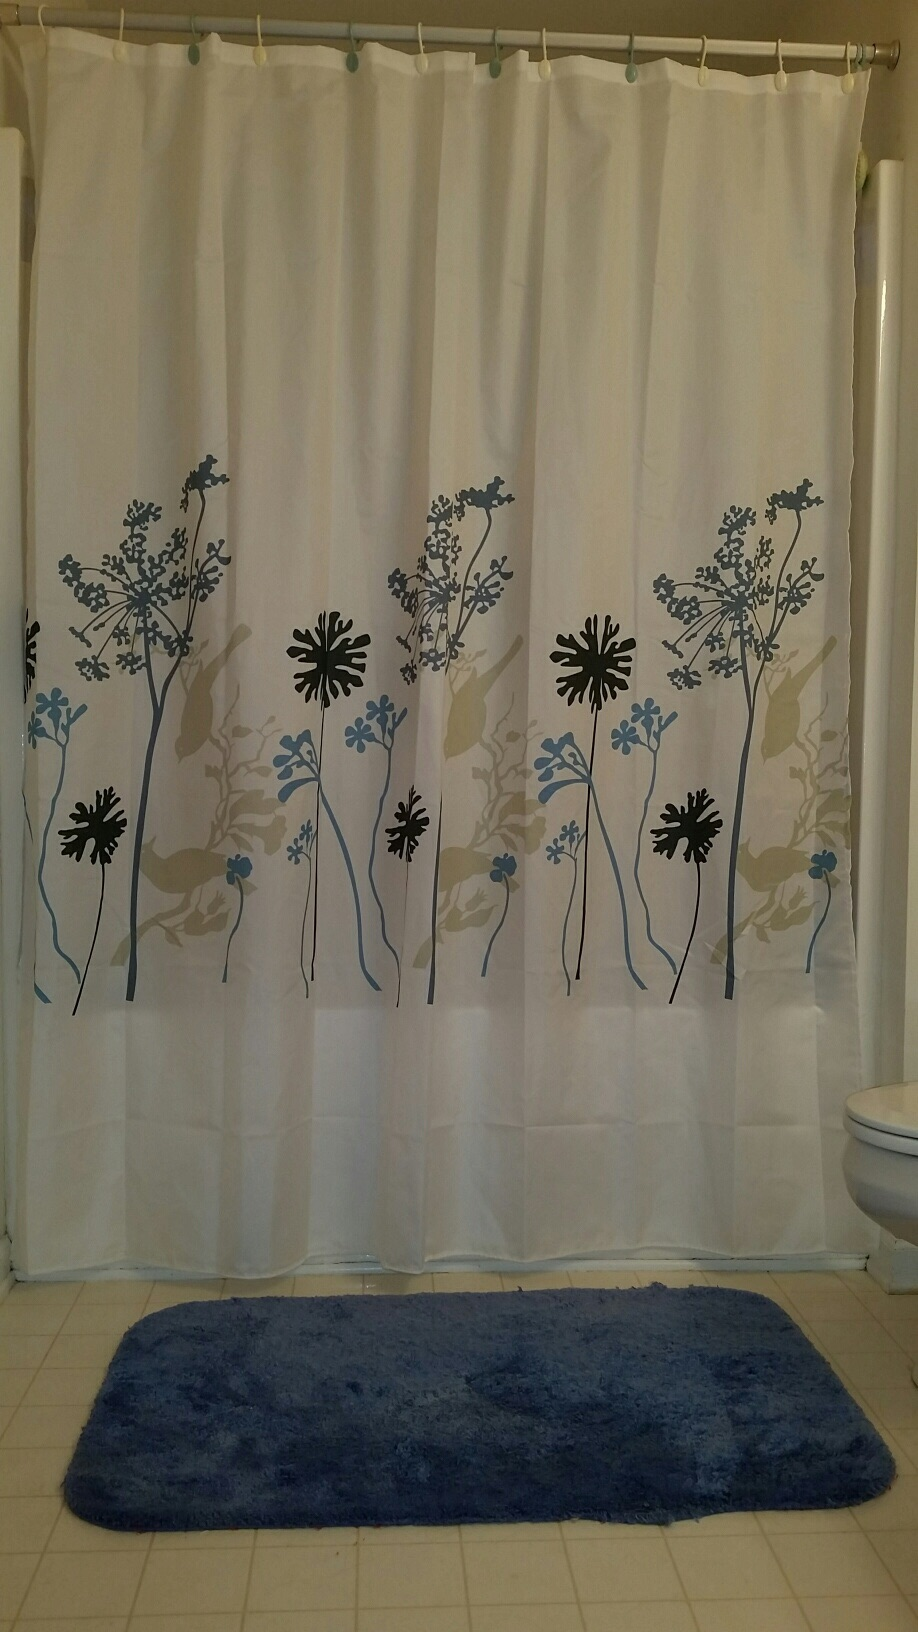 What A Beautiful Waterproof Shower Curtain I Love The Soft Floral Pattern That Has Different Shades Of Blue It Goes Perfect With My Bathroom Colors